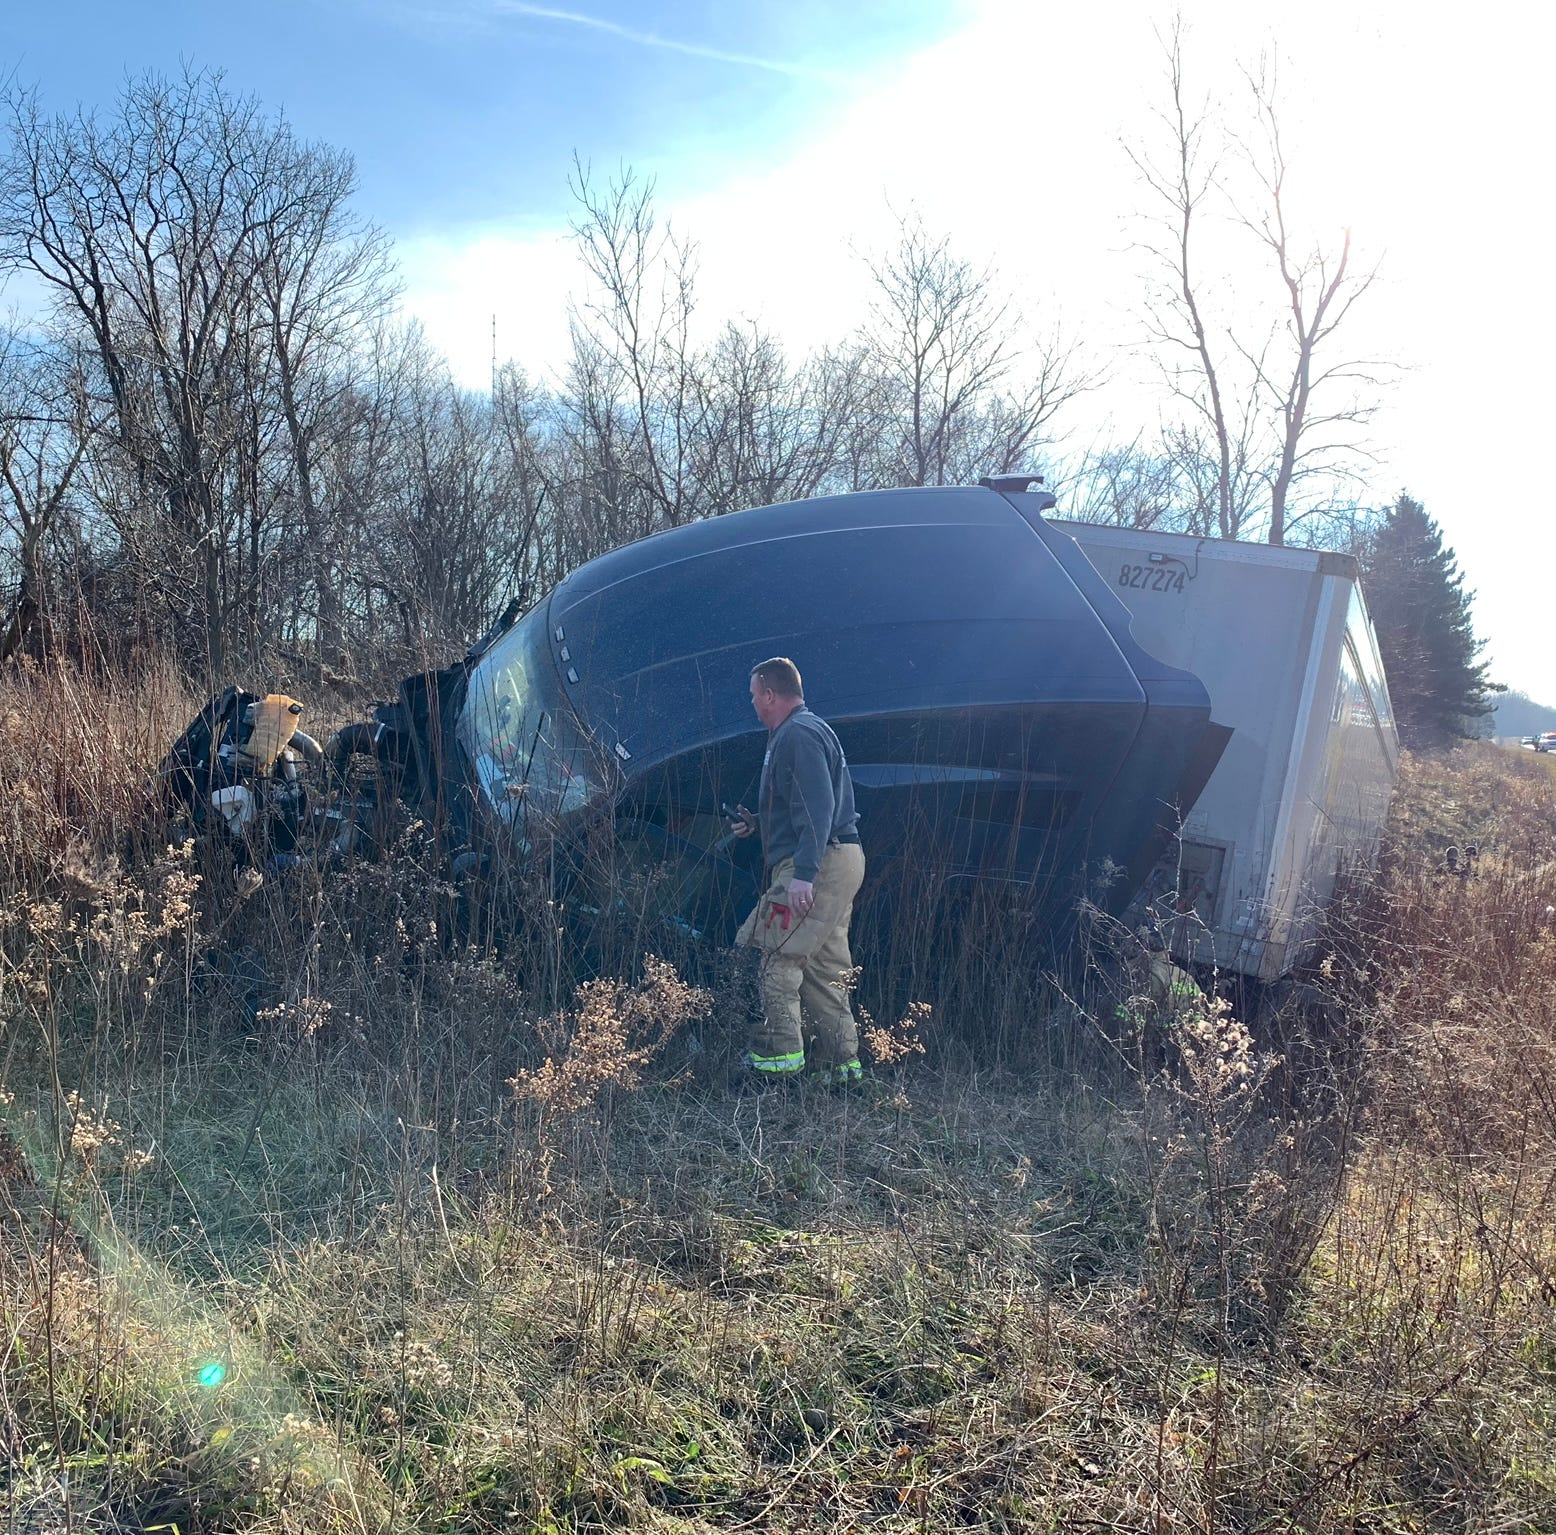 Semi-truck goes off road, drives into ditch on northbound I-71